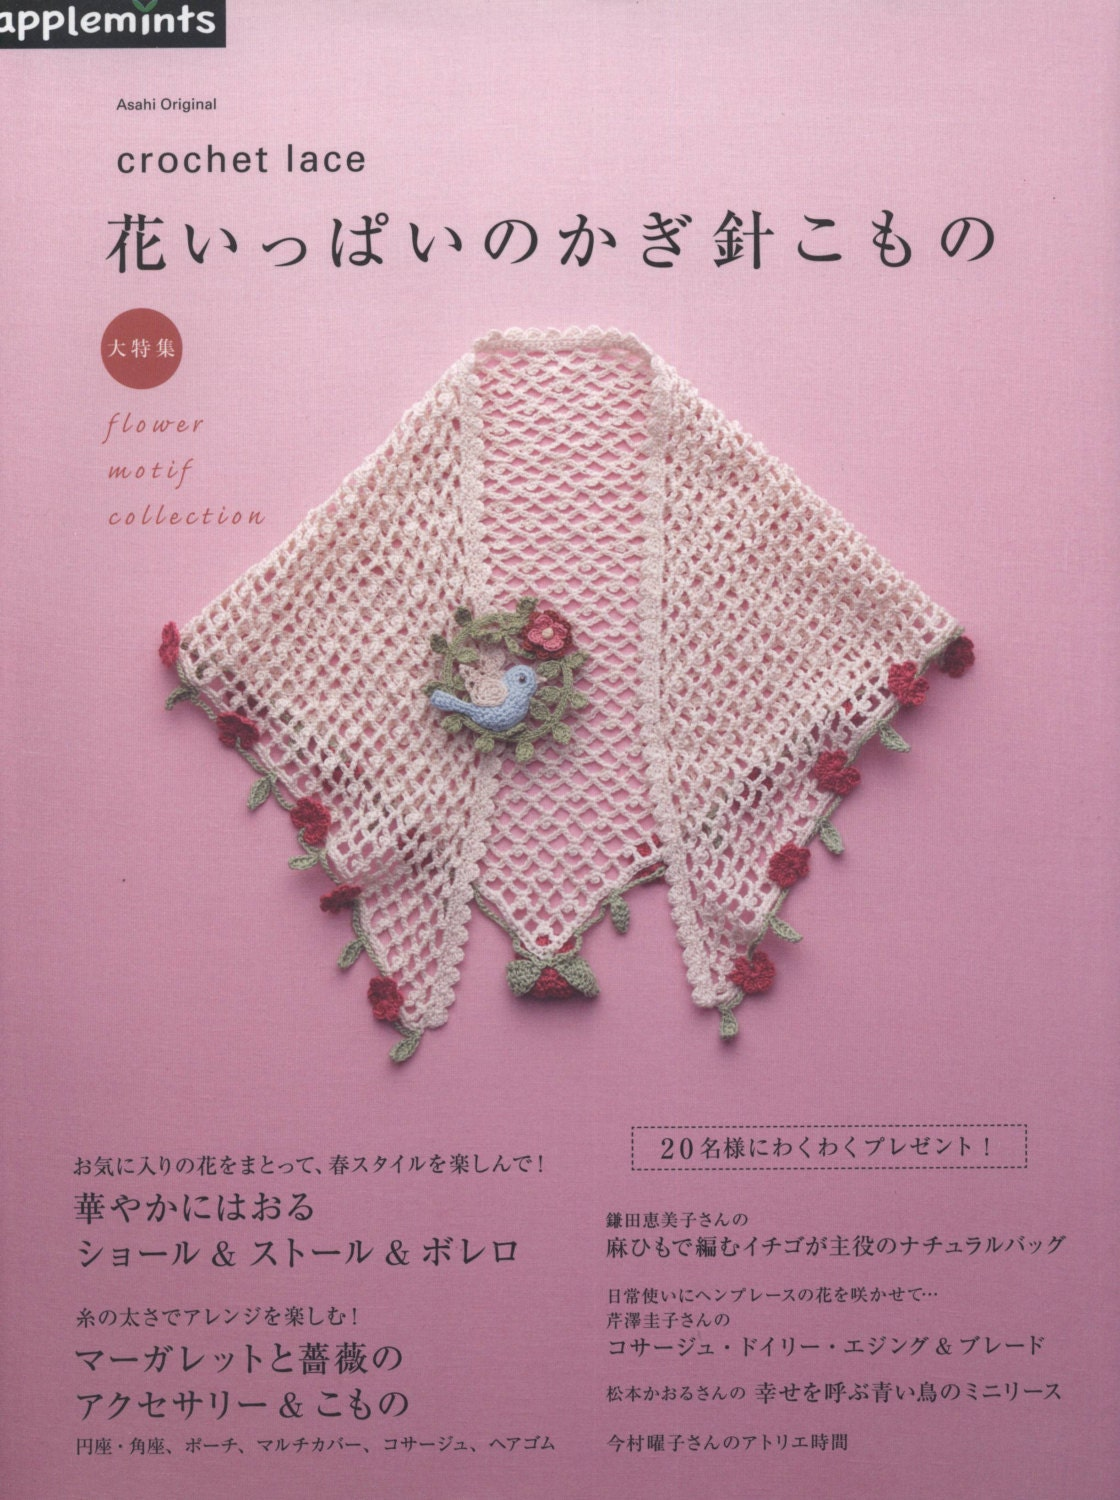 Crochet lace crochet pattern crochet clothes japanese zoom biocorpaavc Gallery